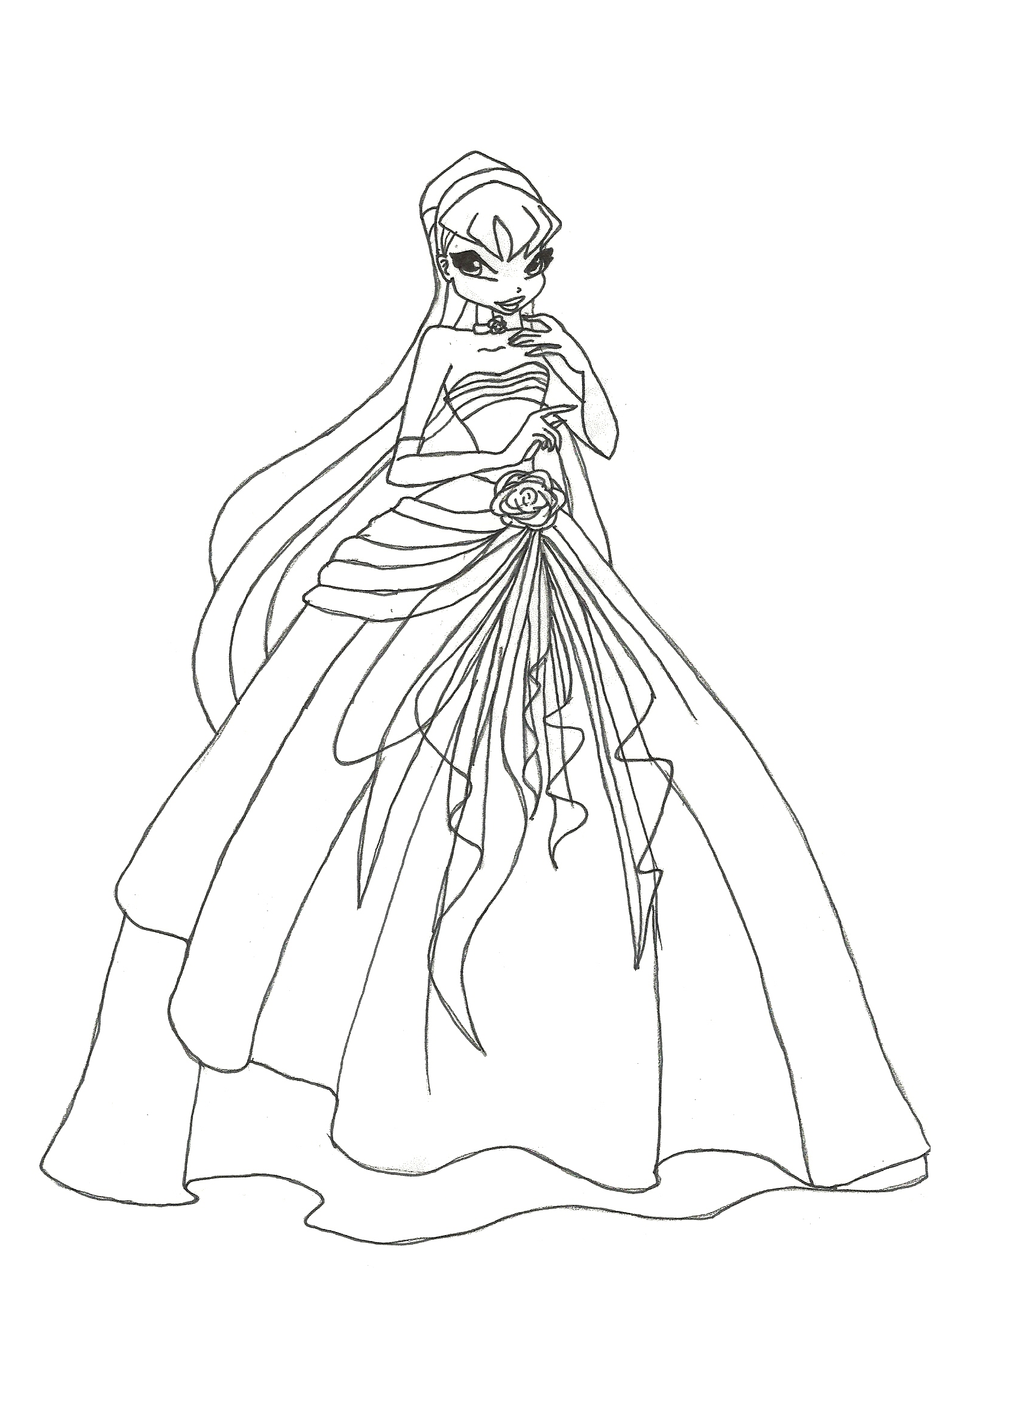 Adult Beauty Winx Coloring Page Images best winx coloring pages by winxmagic237 on deviantart images